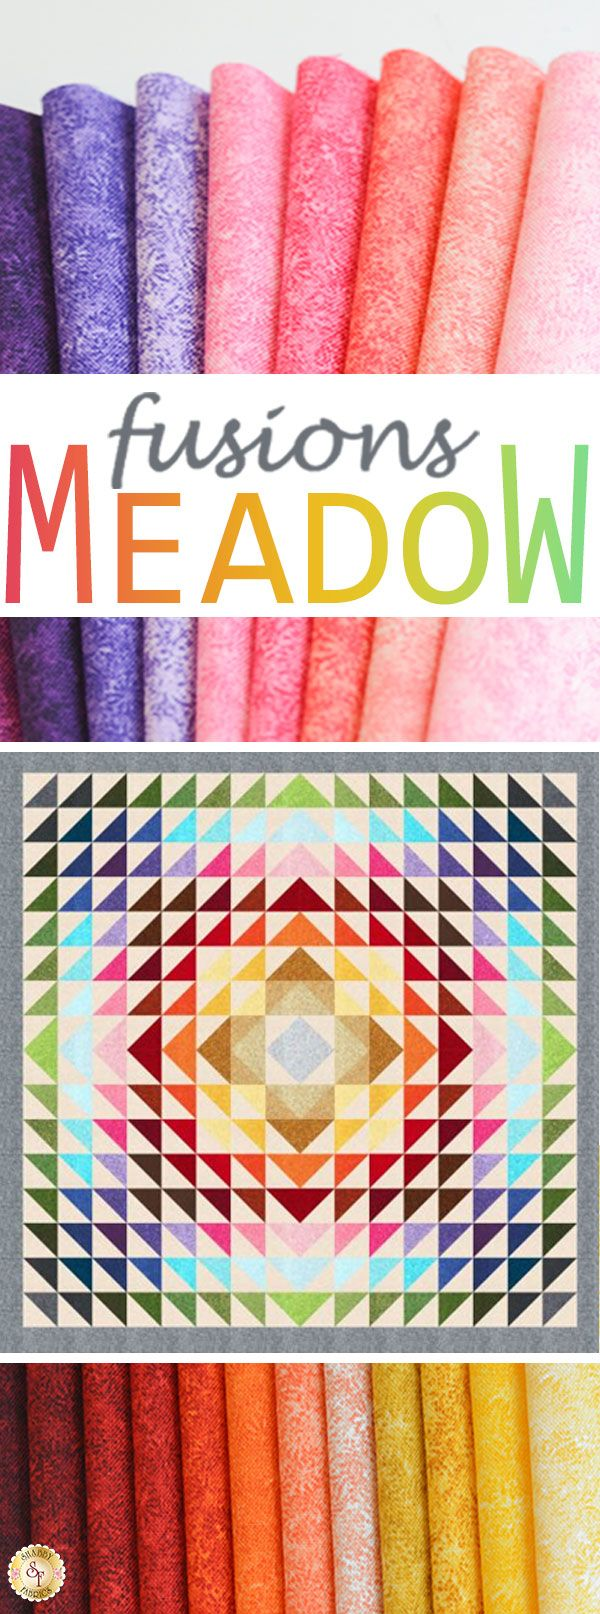 Fusions Meadow by Robert Kaufman Fabrics is a colorful fabric collection available at Shabby Fabrics.